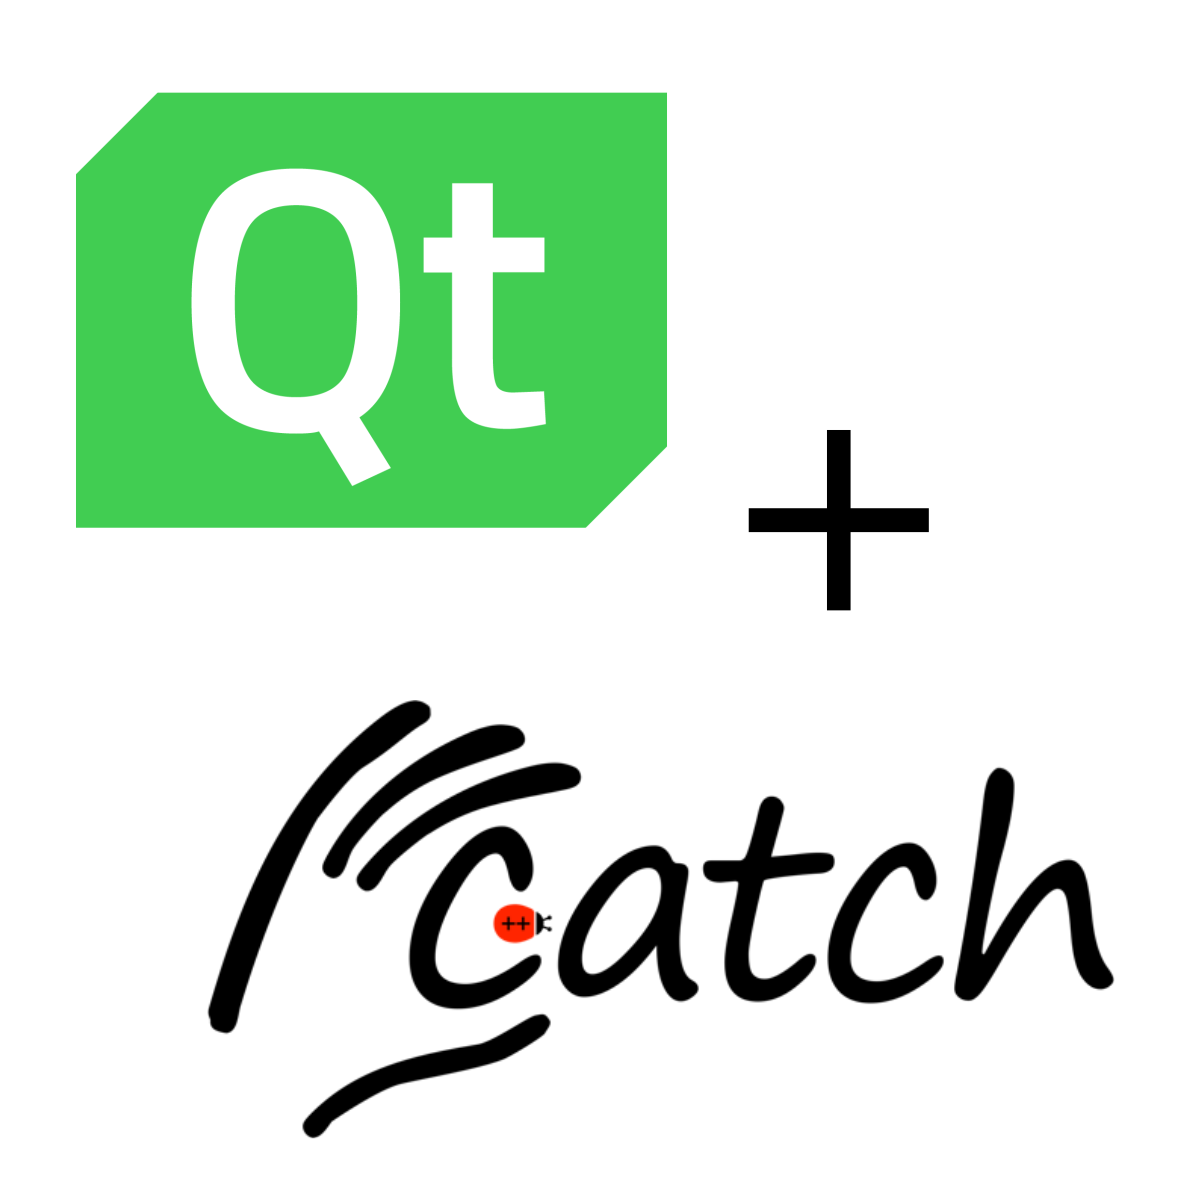 Qt and catch logo